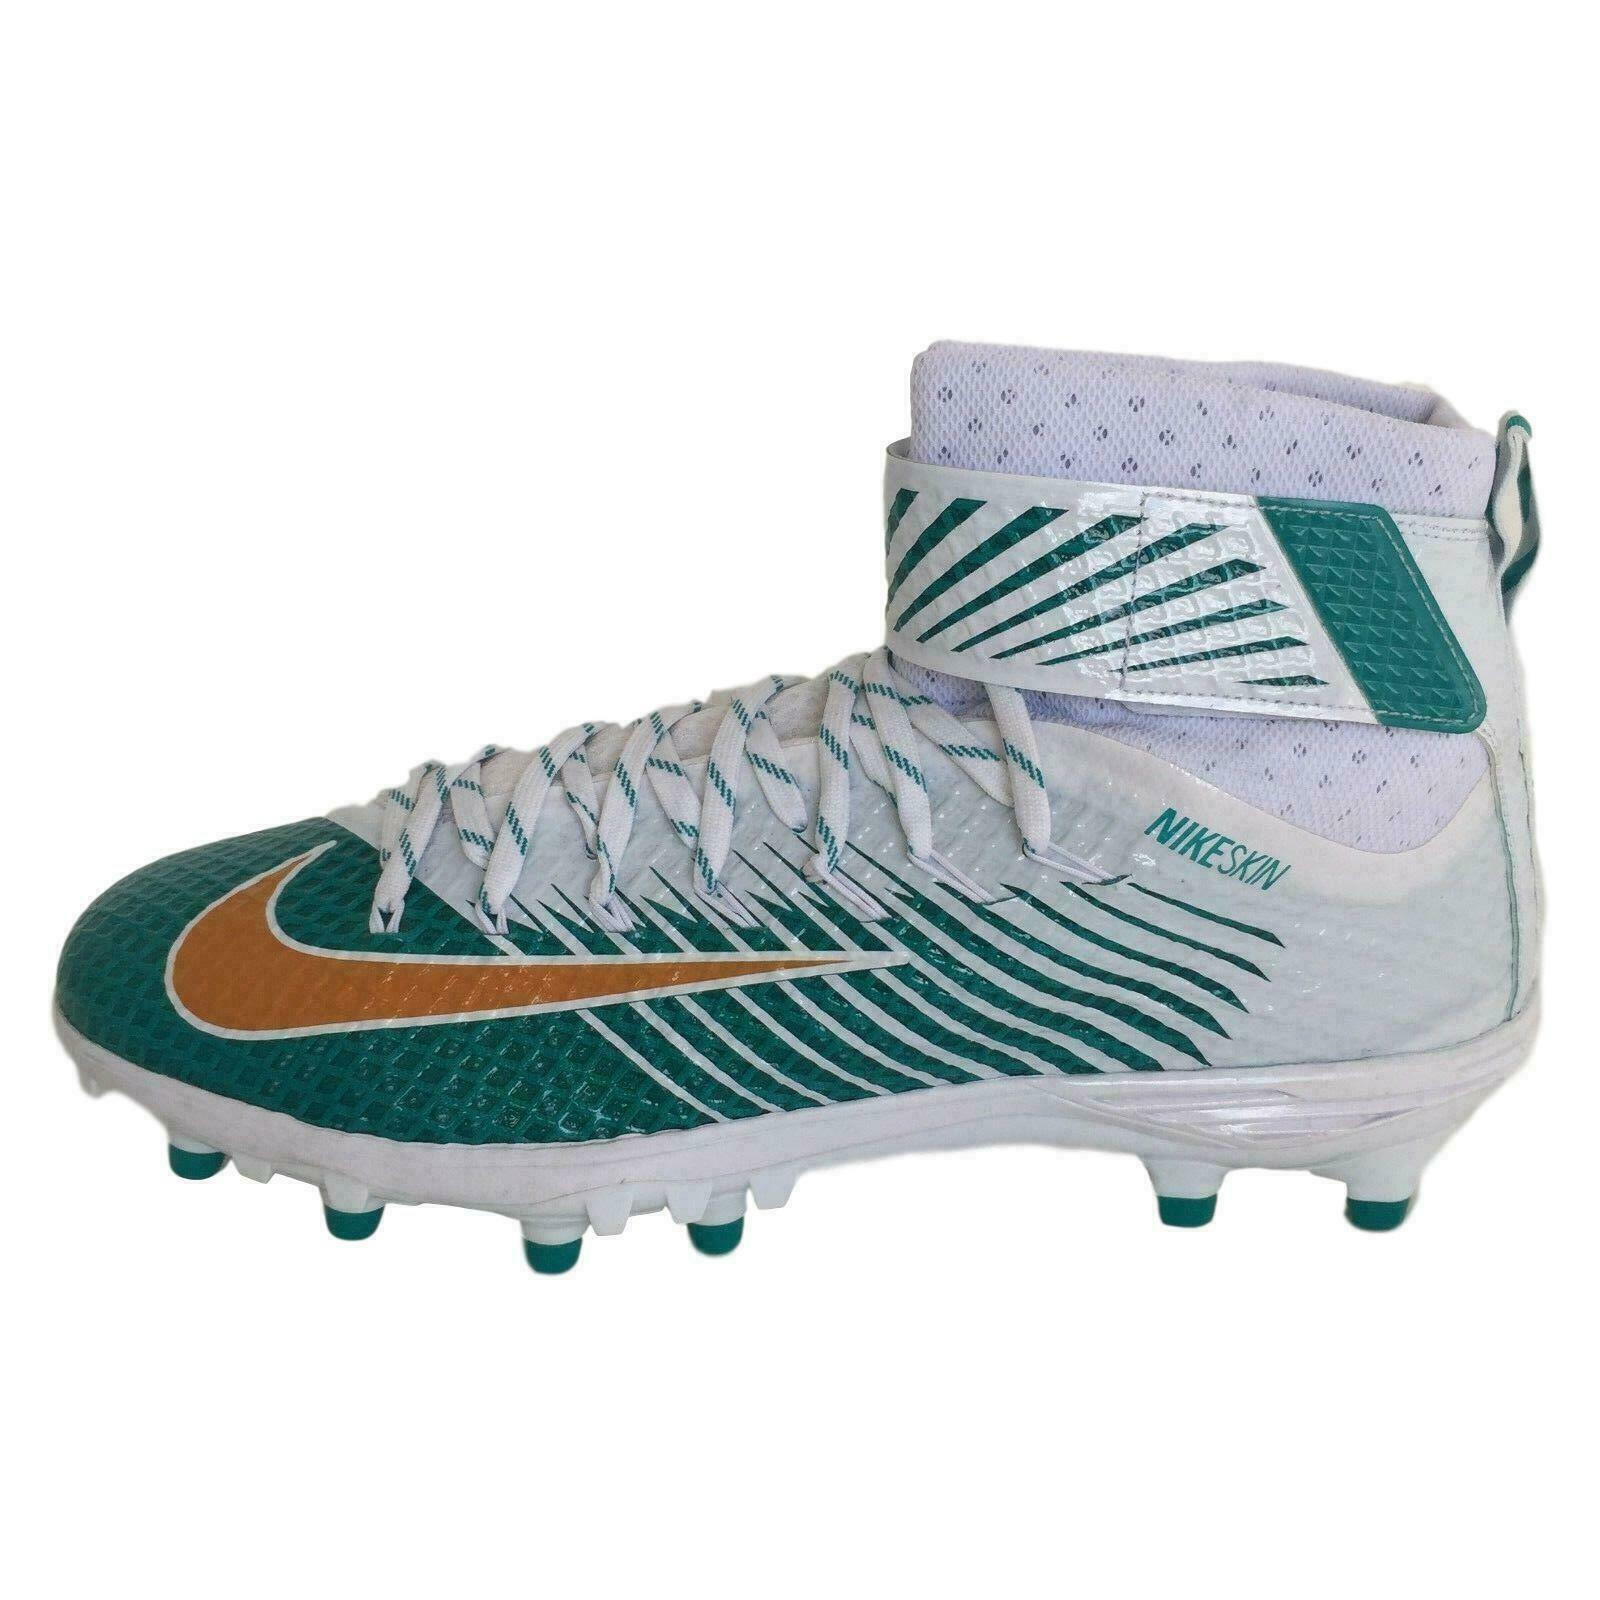 Nike 847588-317 LunarBeast Elite TD Football Cleats Shoes 16 Miami Dolphins UM - $59.37